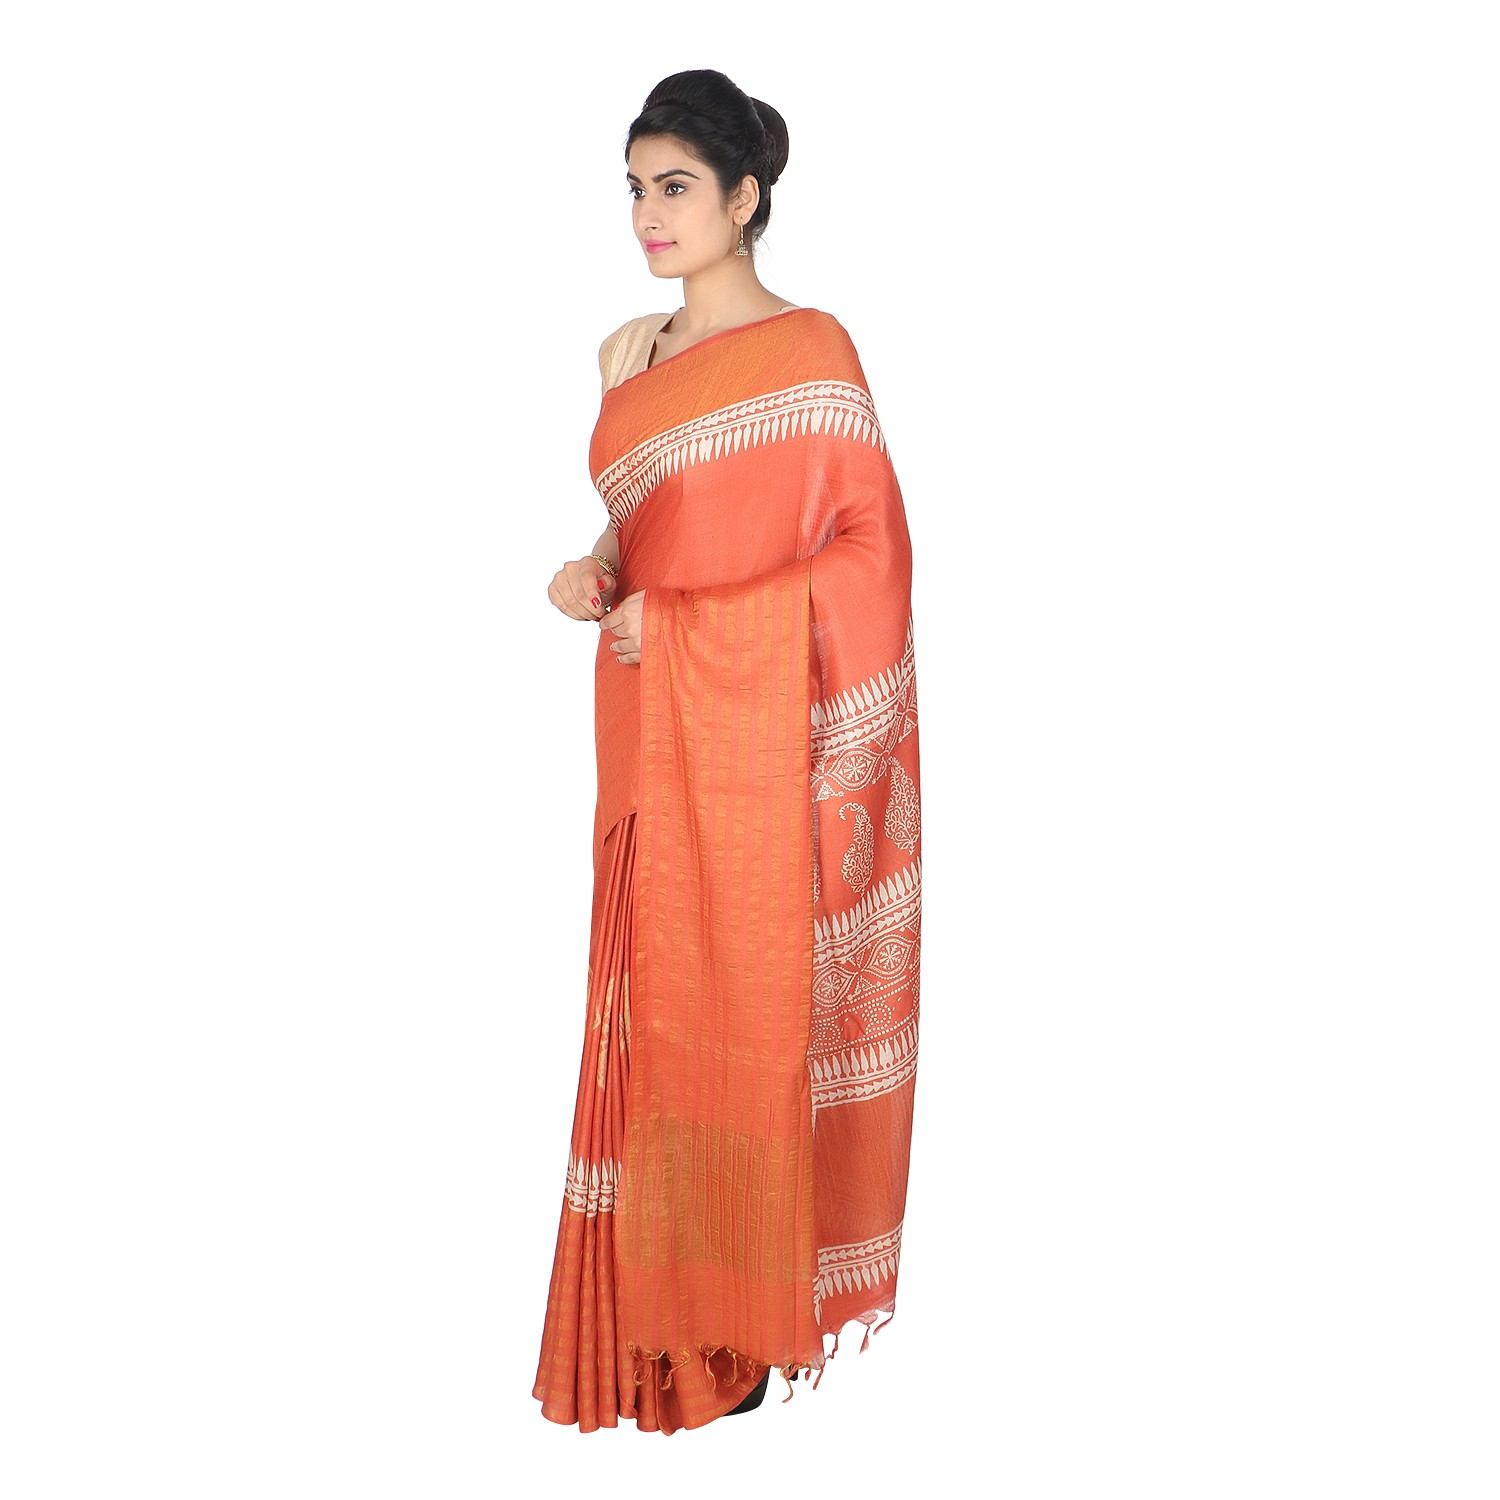 Handmade Orange Munga Tussar Silk Saree by Weavers of Bihar